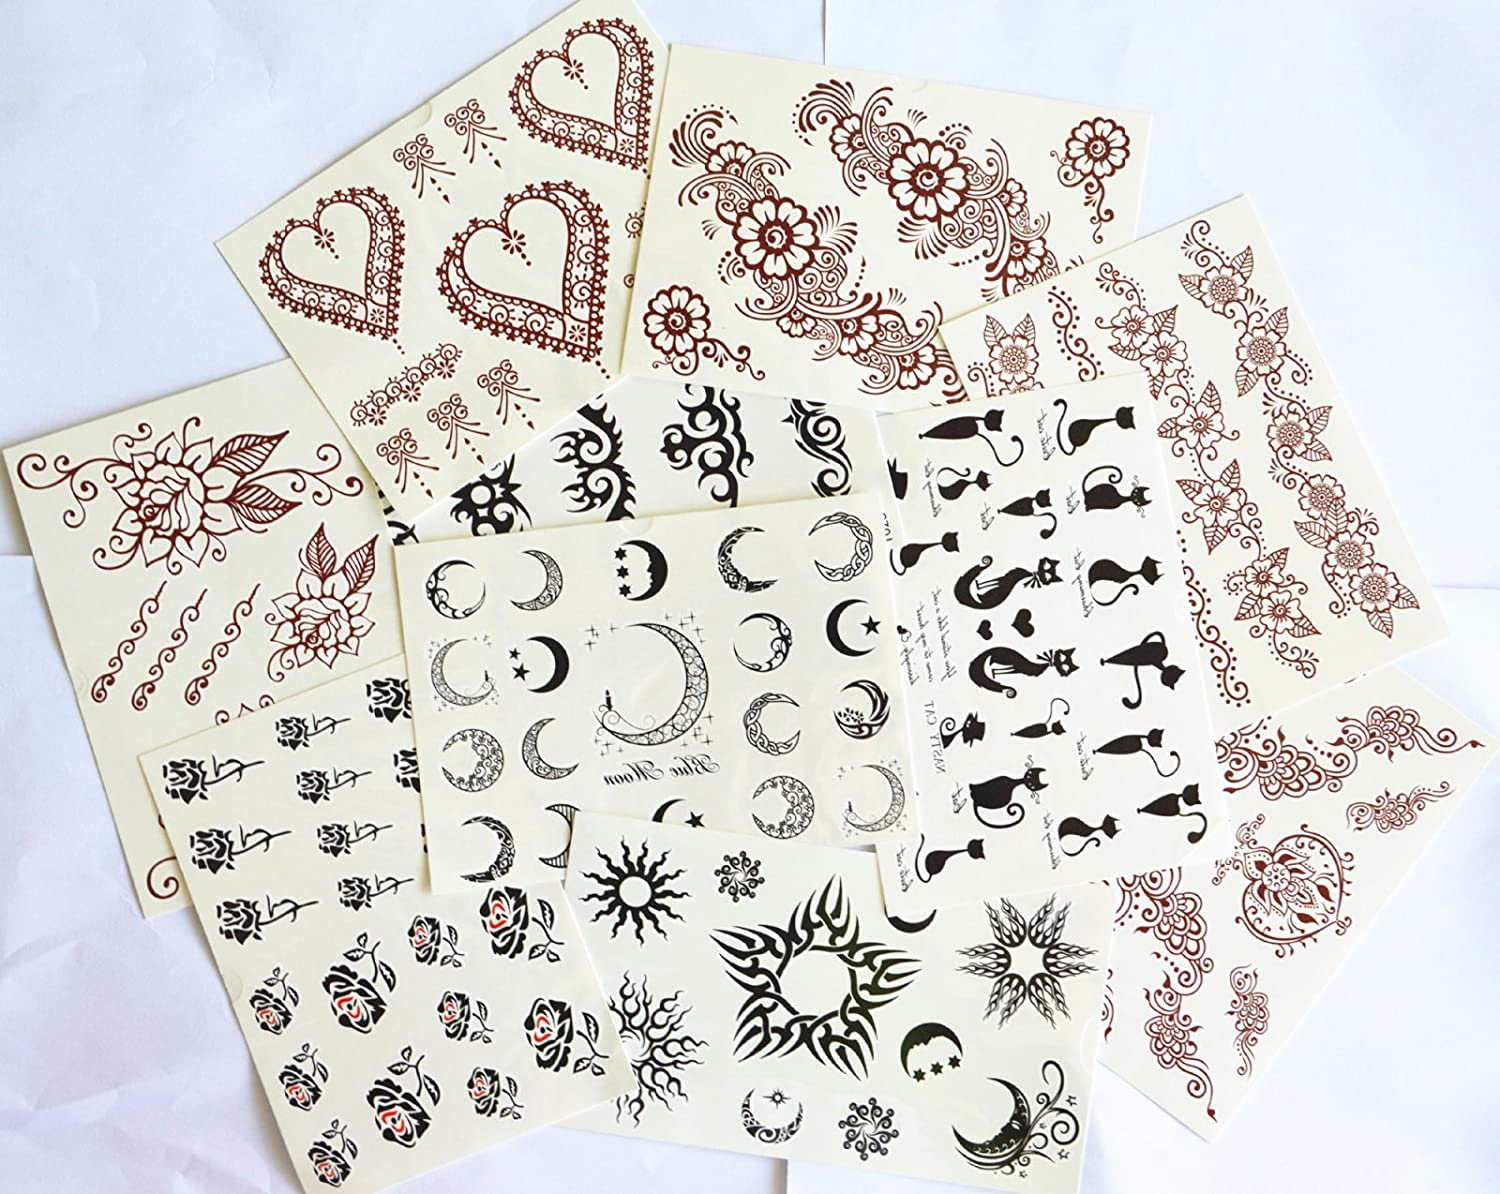 10pcs/package hot selling tattoo sticker stickers various designs including Indian tribes followers tattoos/heart jewelry/roses/moons/stars/cats/totems/etc. supplier